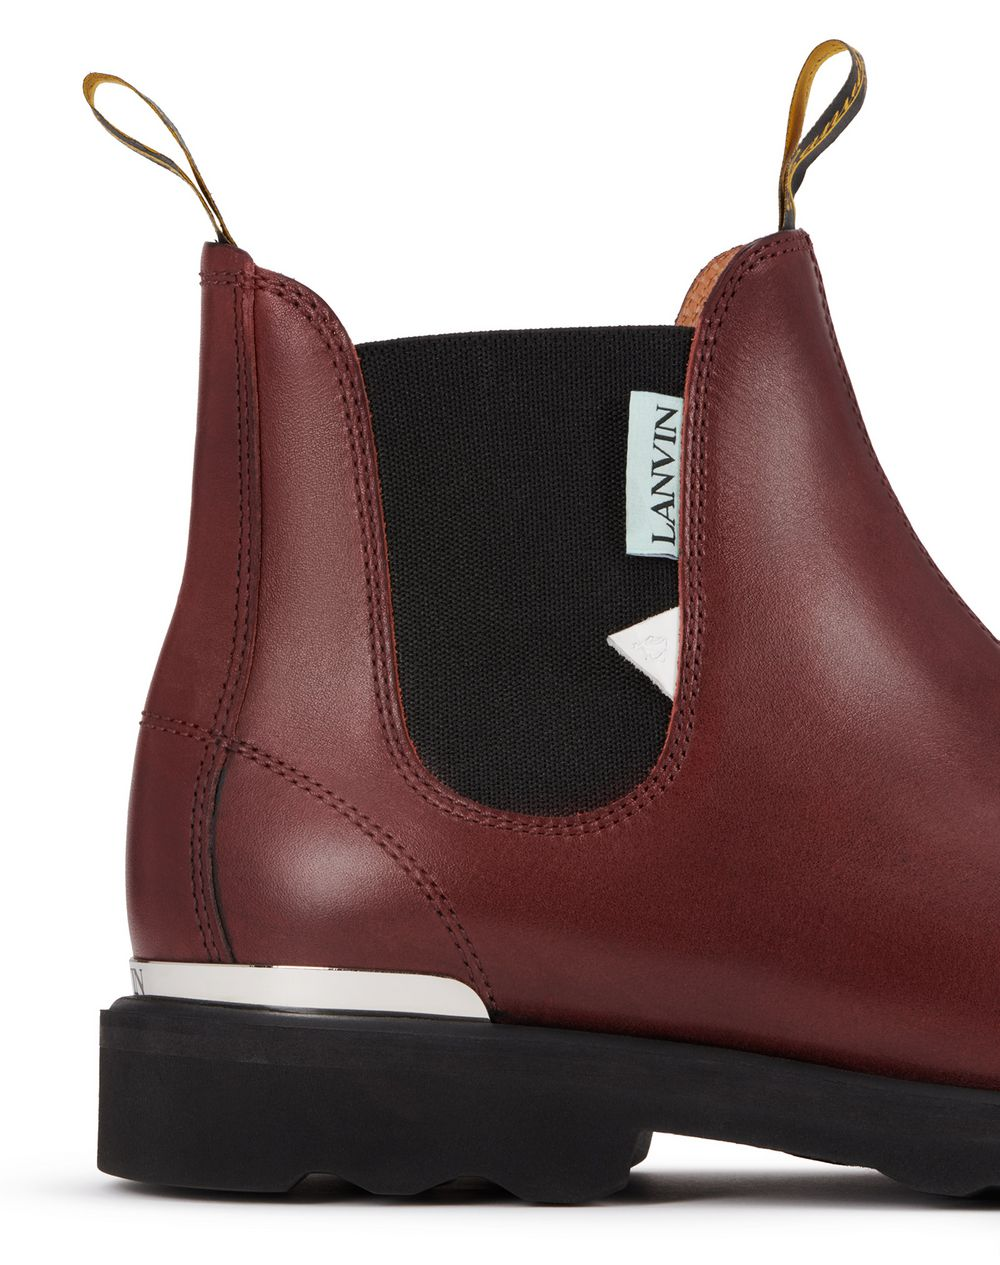 LEATHER LEGION BOOTS - Lanvin